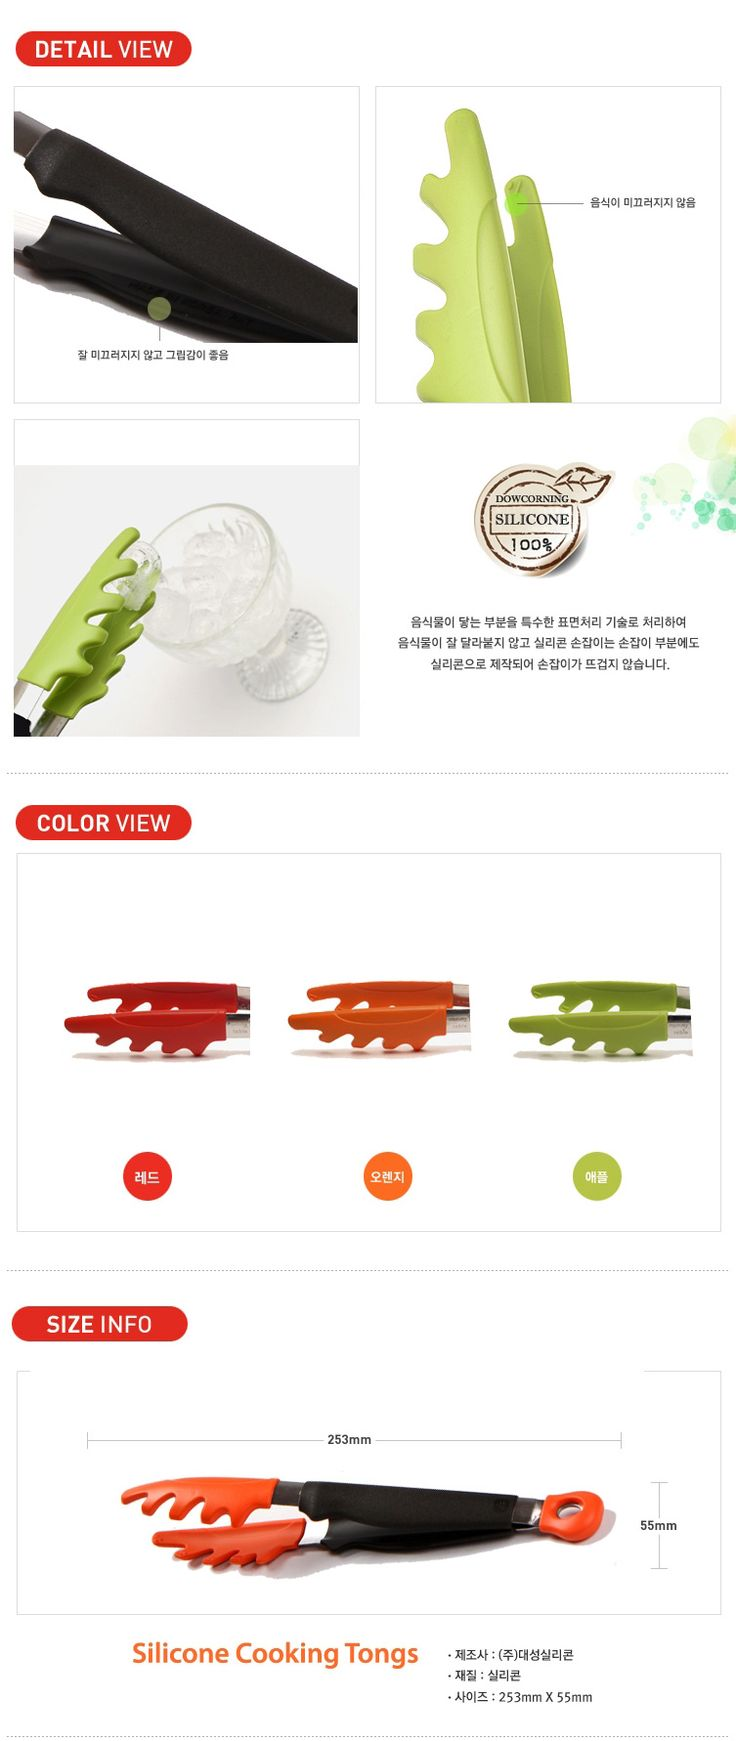 8 best kitchen utensils and appliances images on Pinterest | Cooking ...